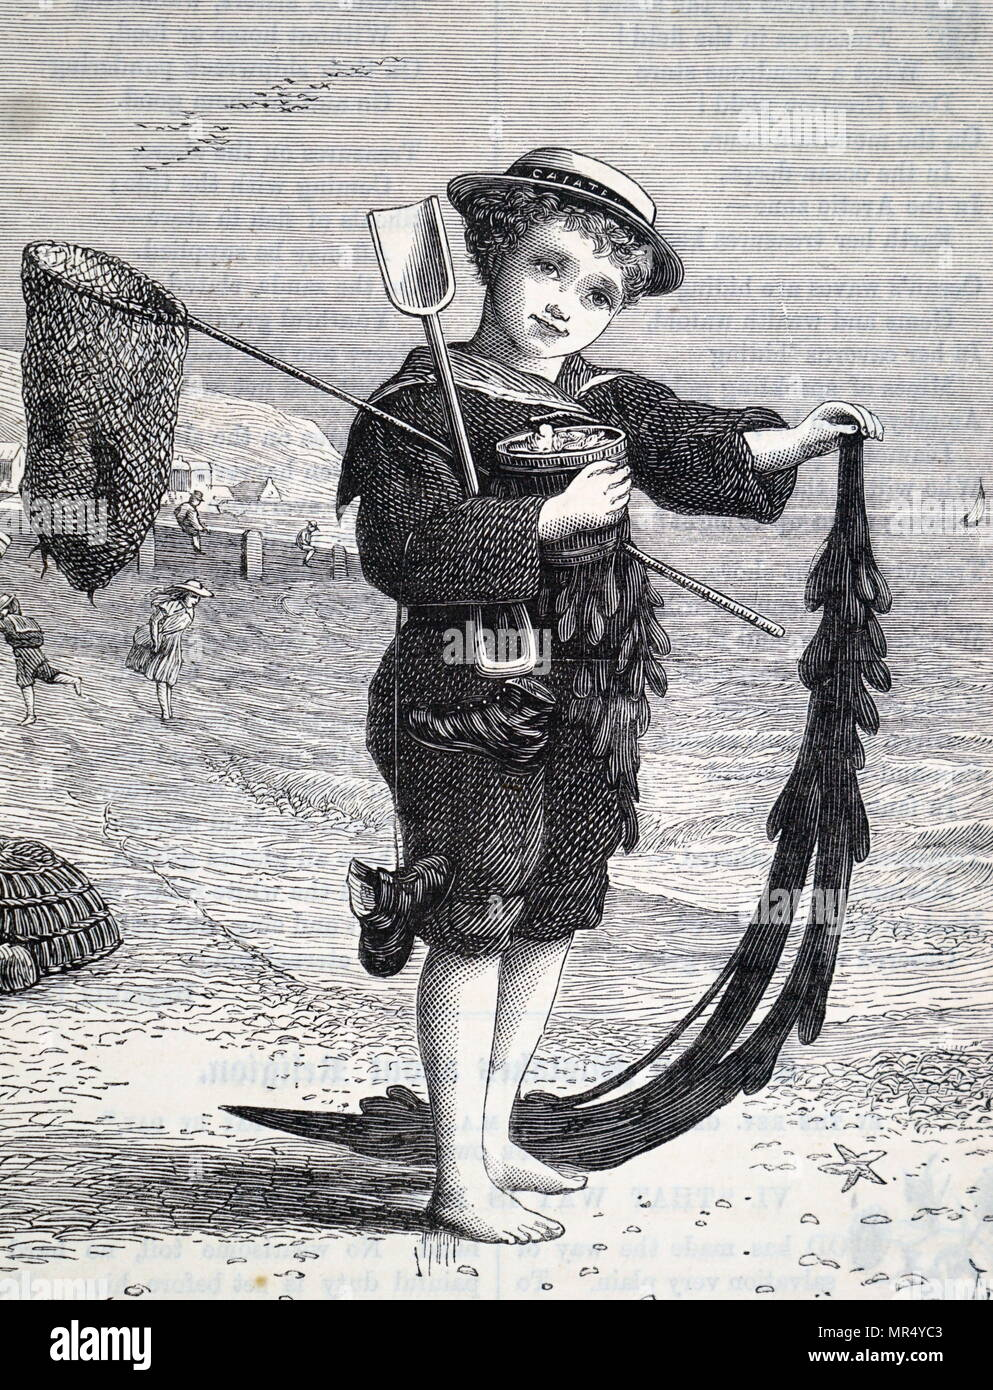 Illustration depicting a typical day at the seaside during the Victorian Era. This young boy holds up a large piece of seaweed, whilst in his other hand he holds a bucket of cockles, a popular seaside snack. Dated 19th century - Stock Image